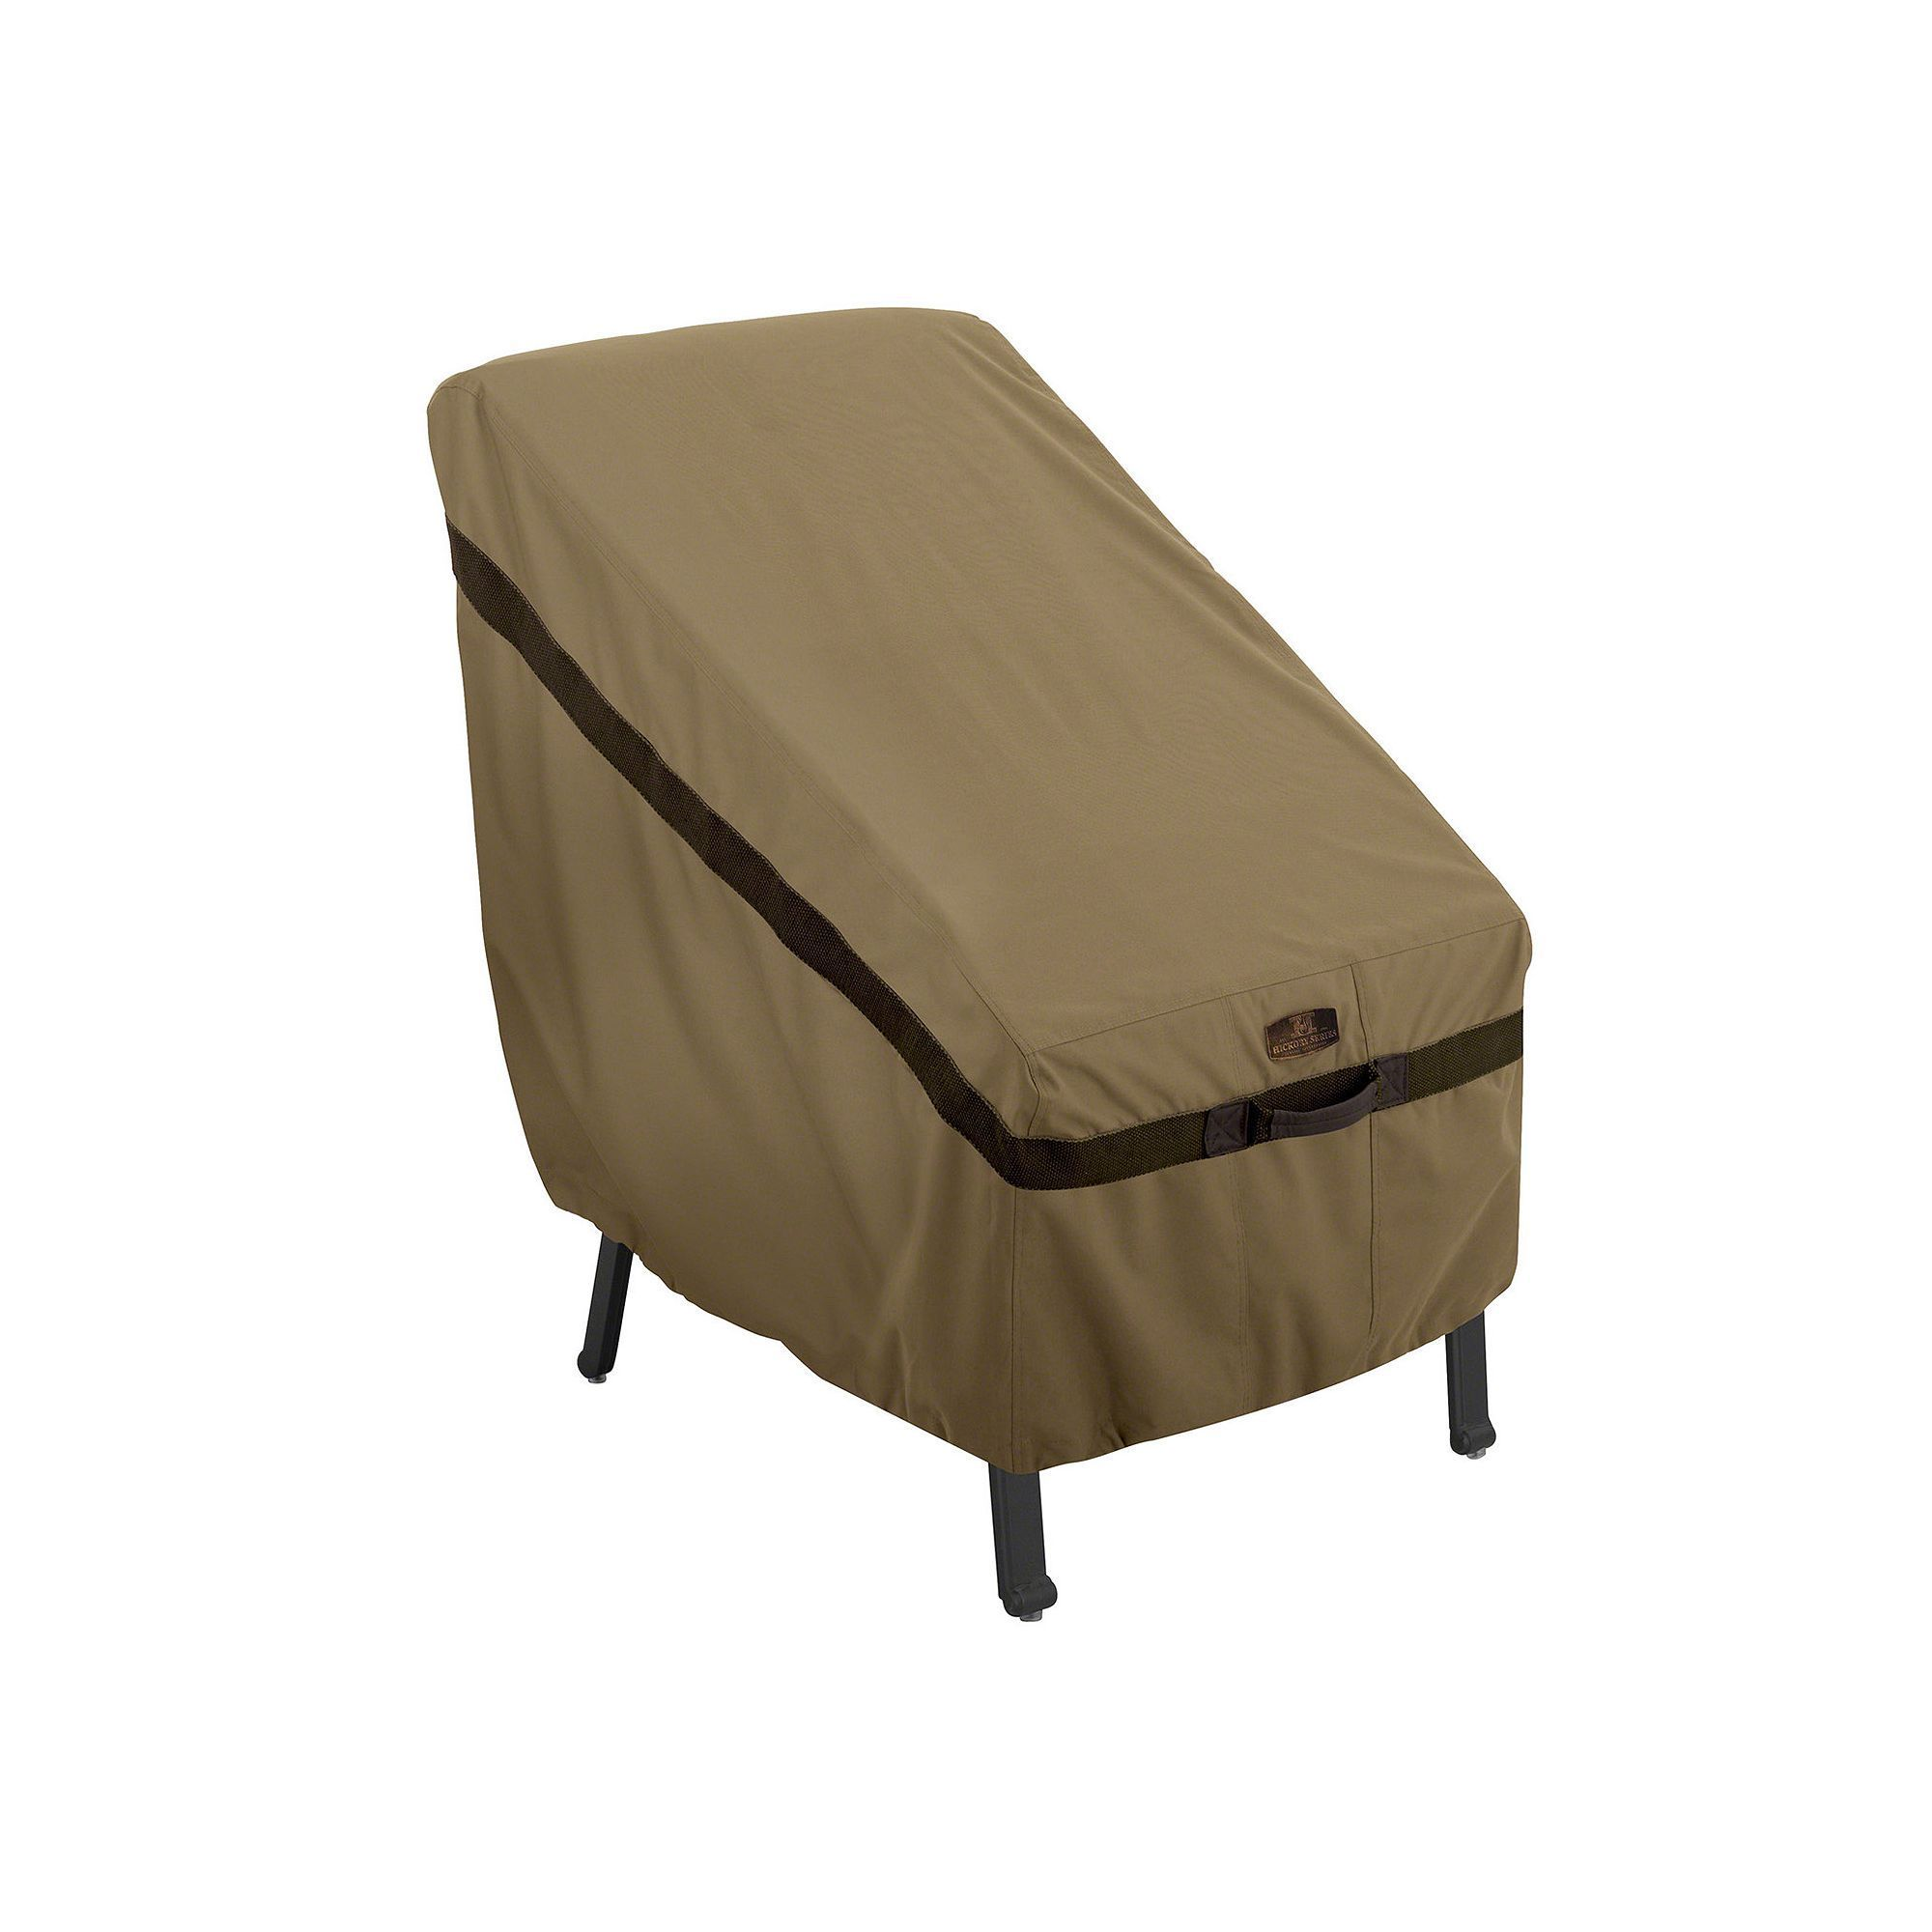 Hickory HighBack Patio Chair Cover Patio furniture